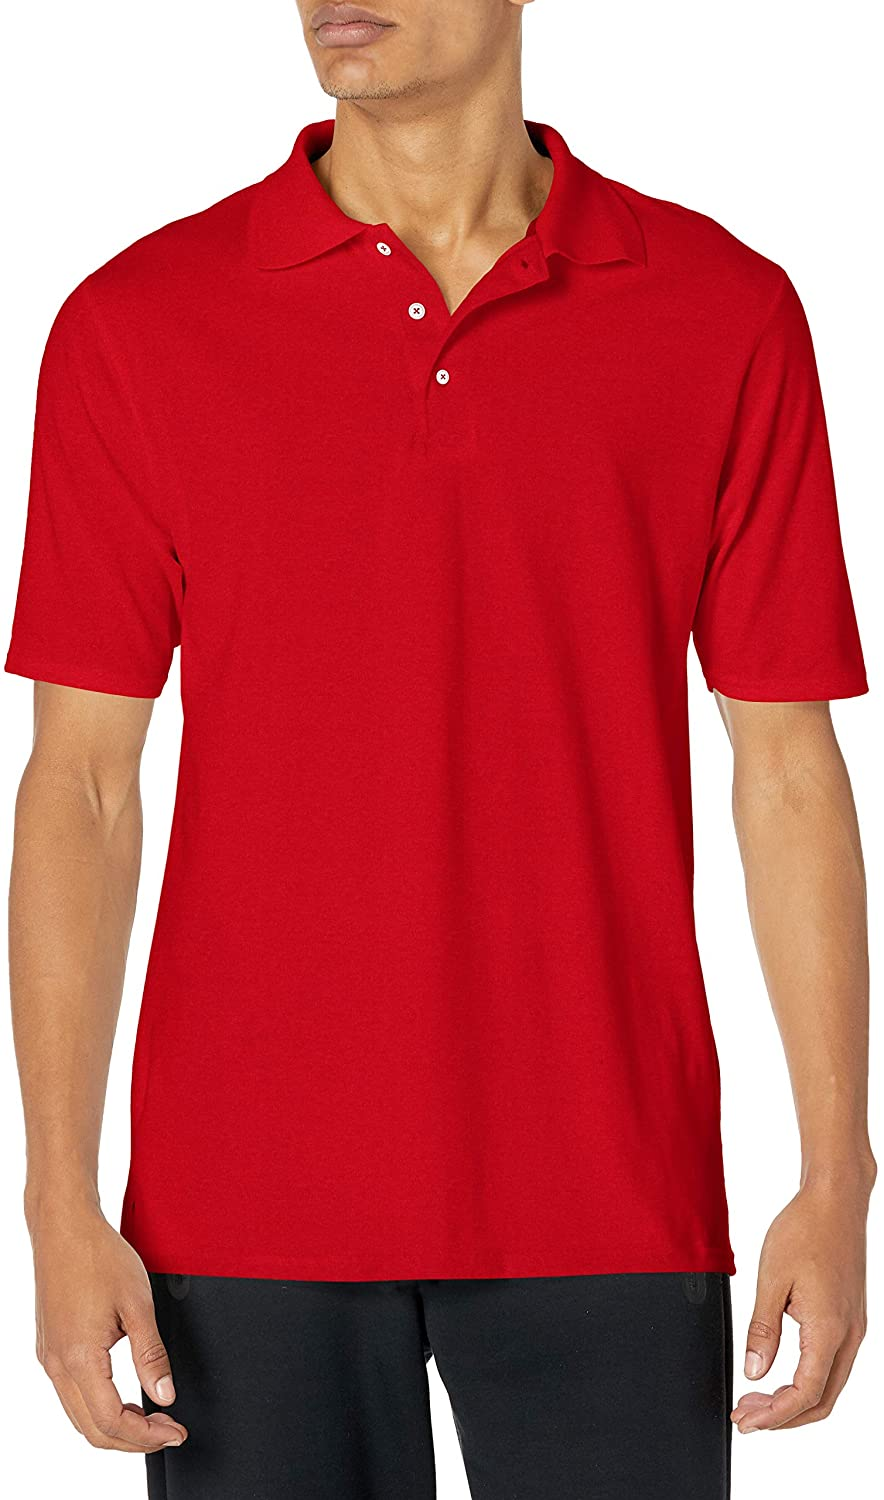 Man wears Hanes Men's X Temp Performance Polo Shirt in red